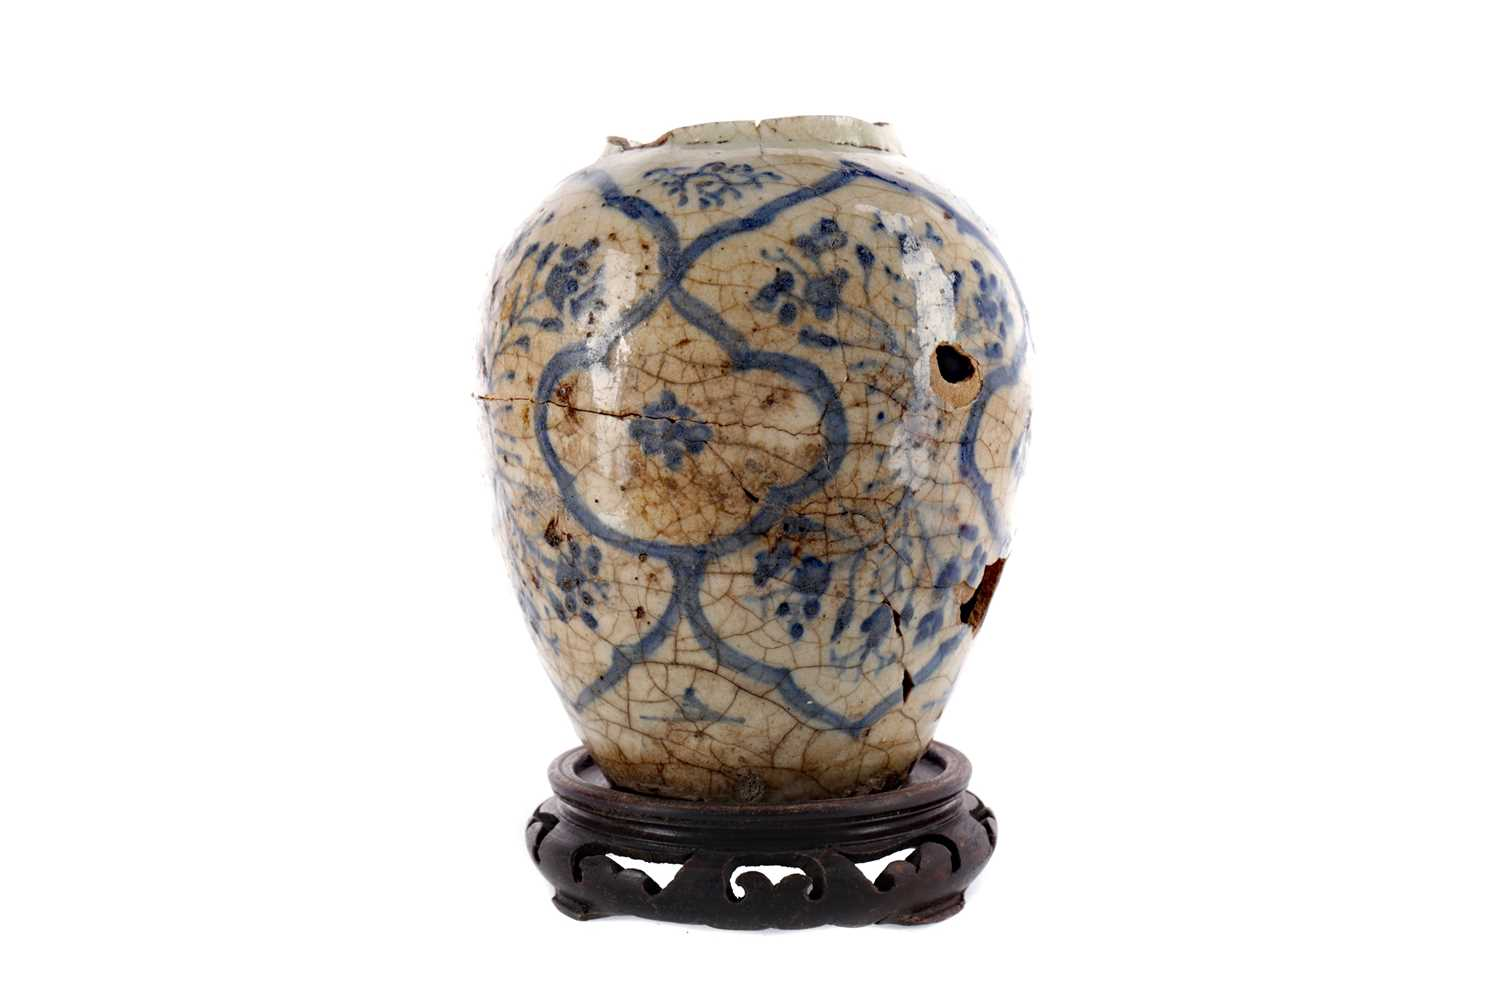 Lot 841 - AN EASTERN CERAMIC DOUBLE GOURD VASE AND OTHER ITEMS